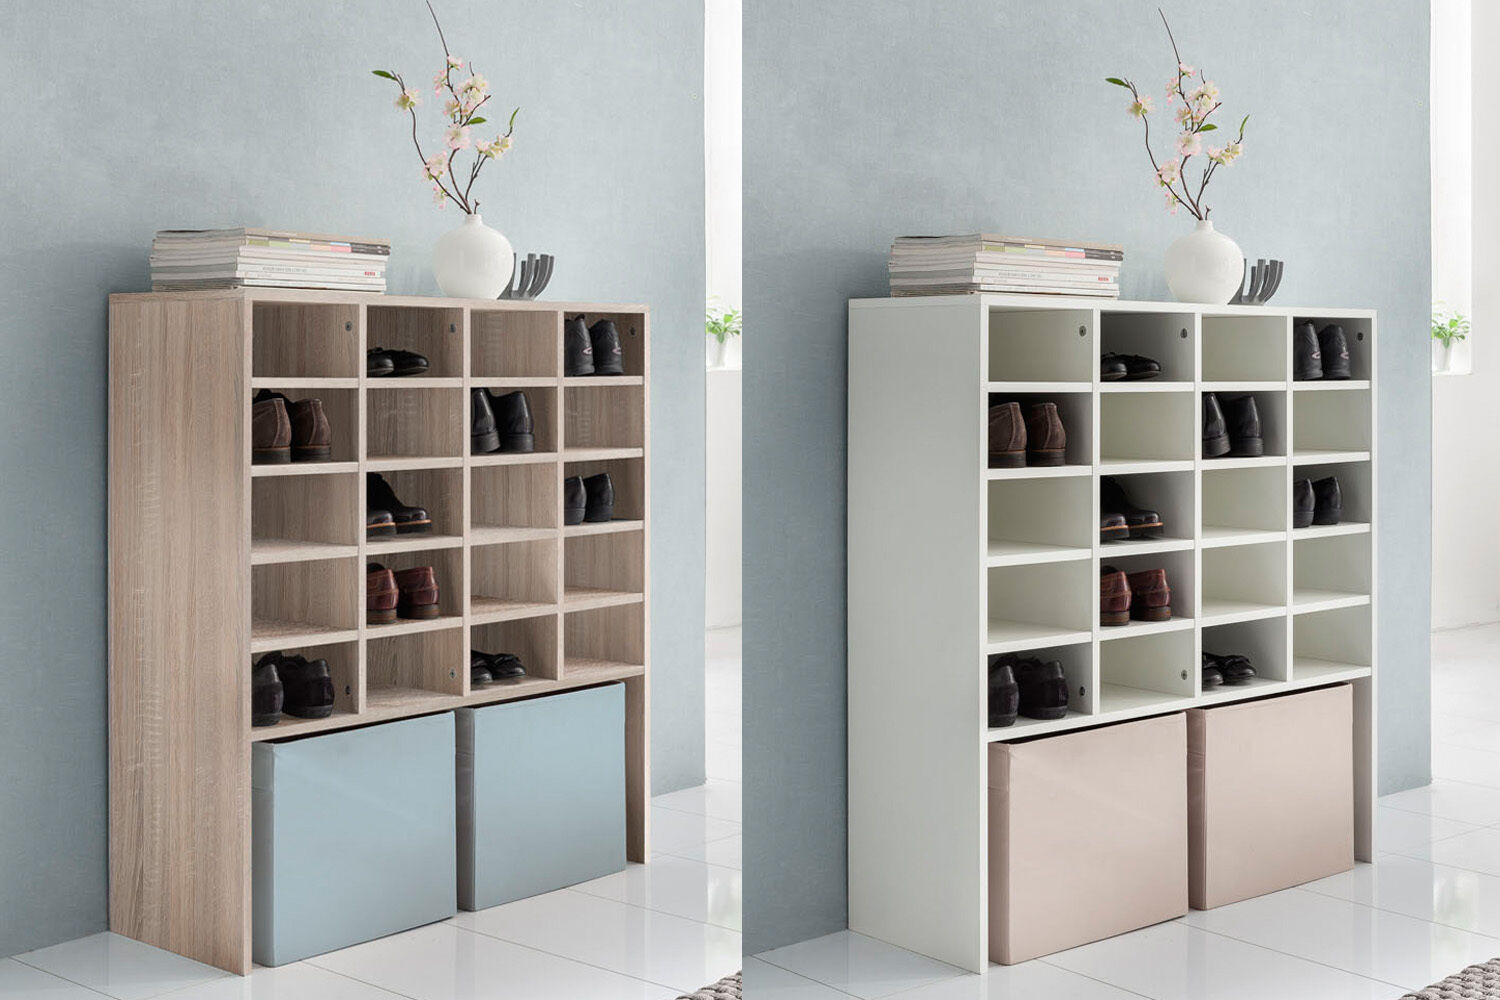 schuhregal schuhschrank regal schrank mit 20 f cher sonoma eiche wei eur 119 99 picclick de. Black Bedroom Furniture Sets. Home Design Ideas